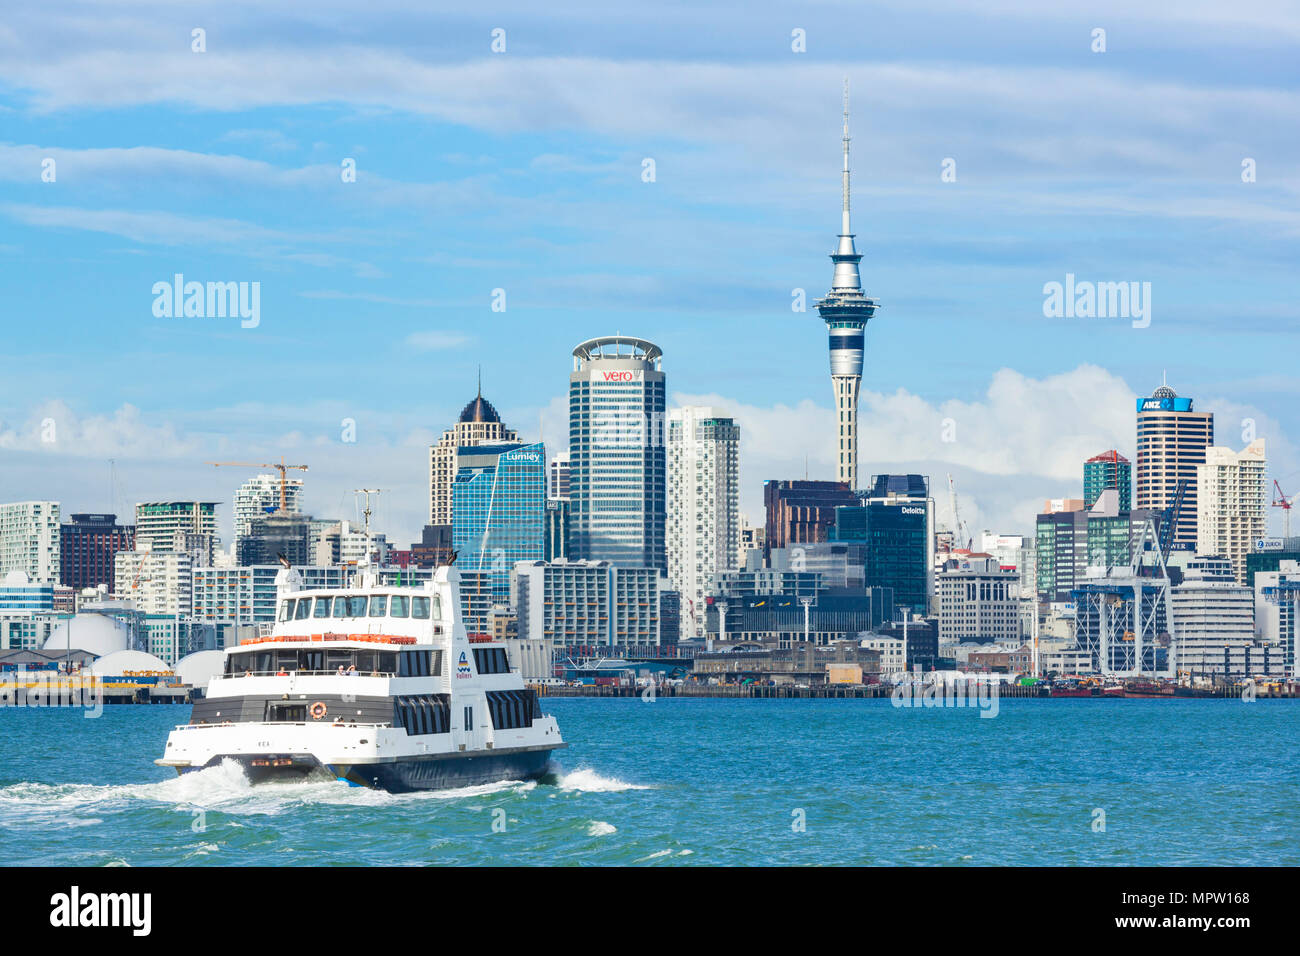 new zealand auckland new zealand north island auckland ferry departing from Devonport ferry terminal across to the cbd of the city of auckland nz - Stock Image